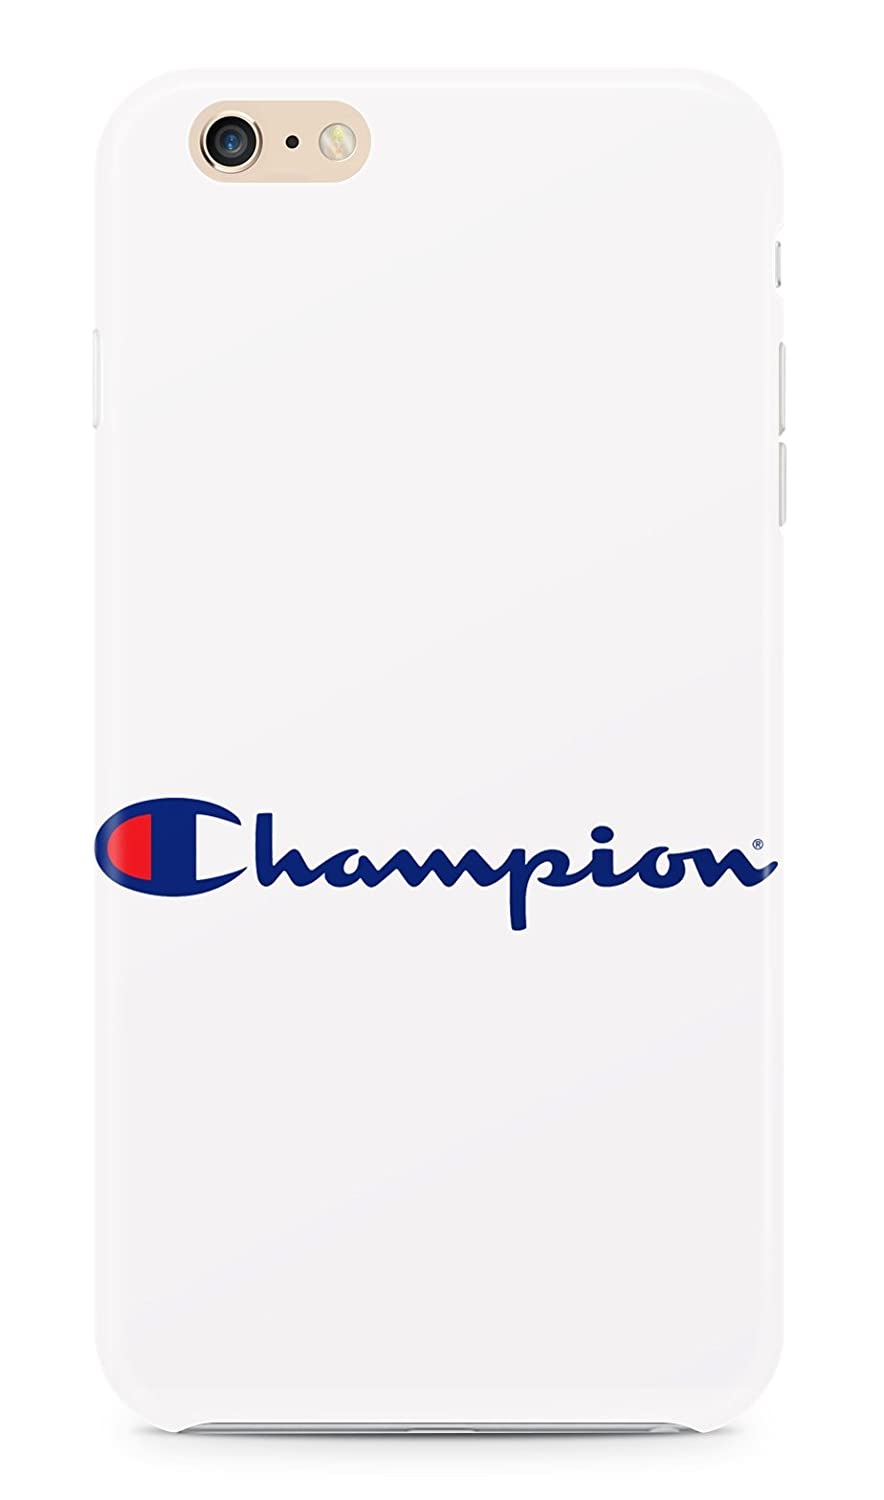 9a5f1f42dc51f Iphone 7 case Champion logo sports vintage plastic hard case cover for  Apple Iphone 7 (Iphone 7)  Amazon.co.uk  Electronics